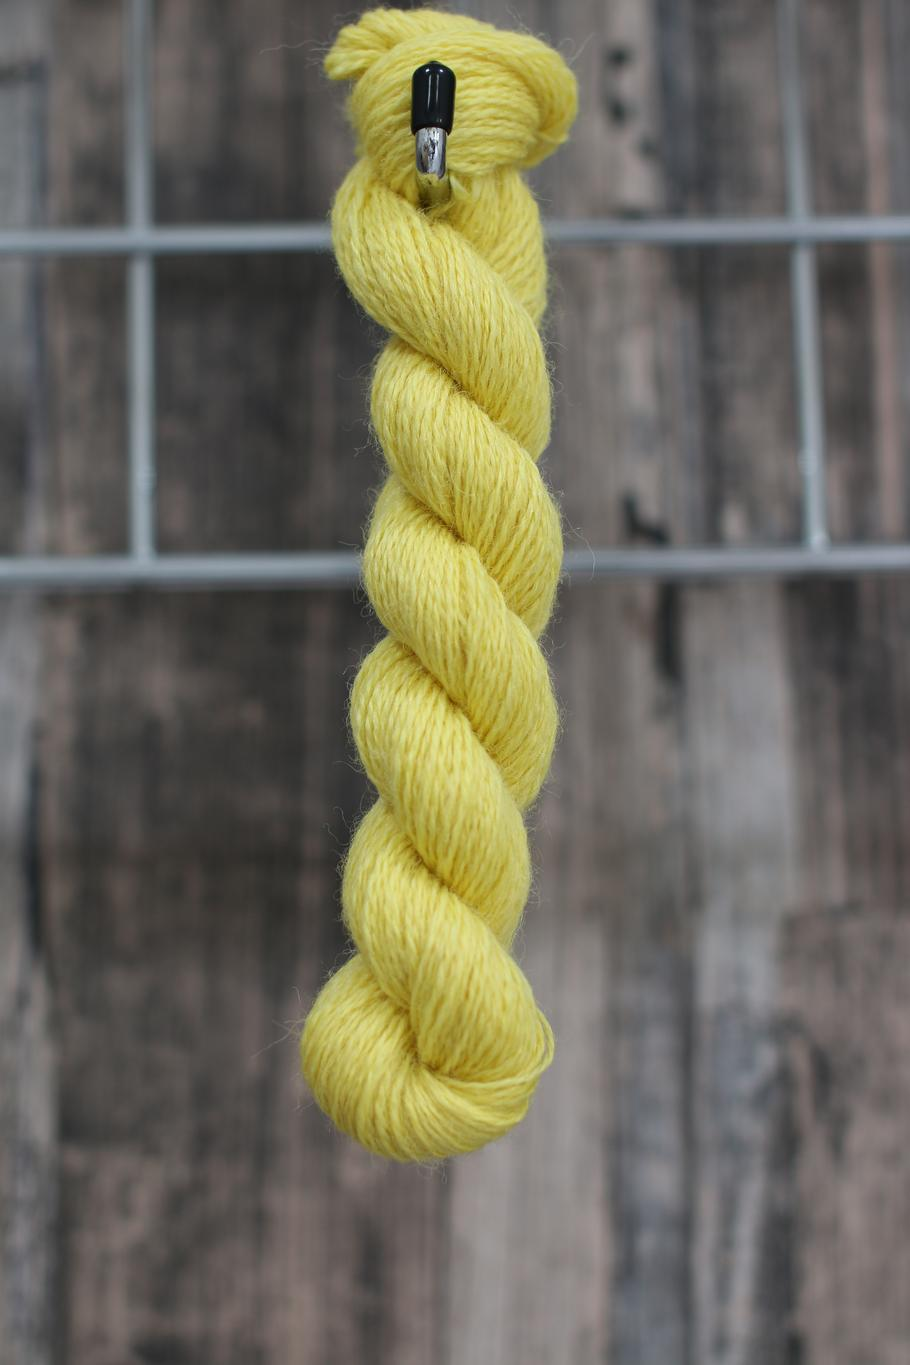 A bright lemon skein of wool hanging from a hook